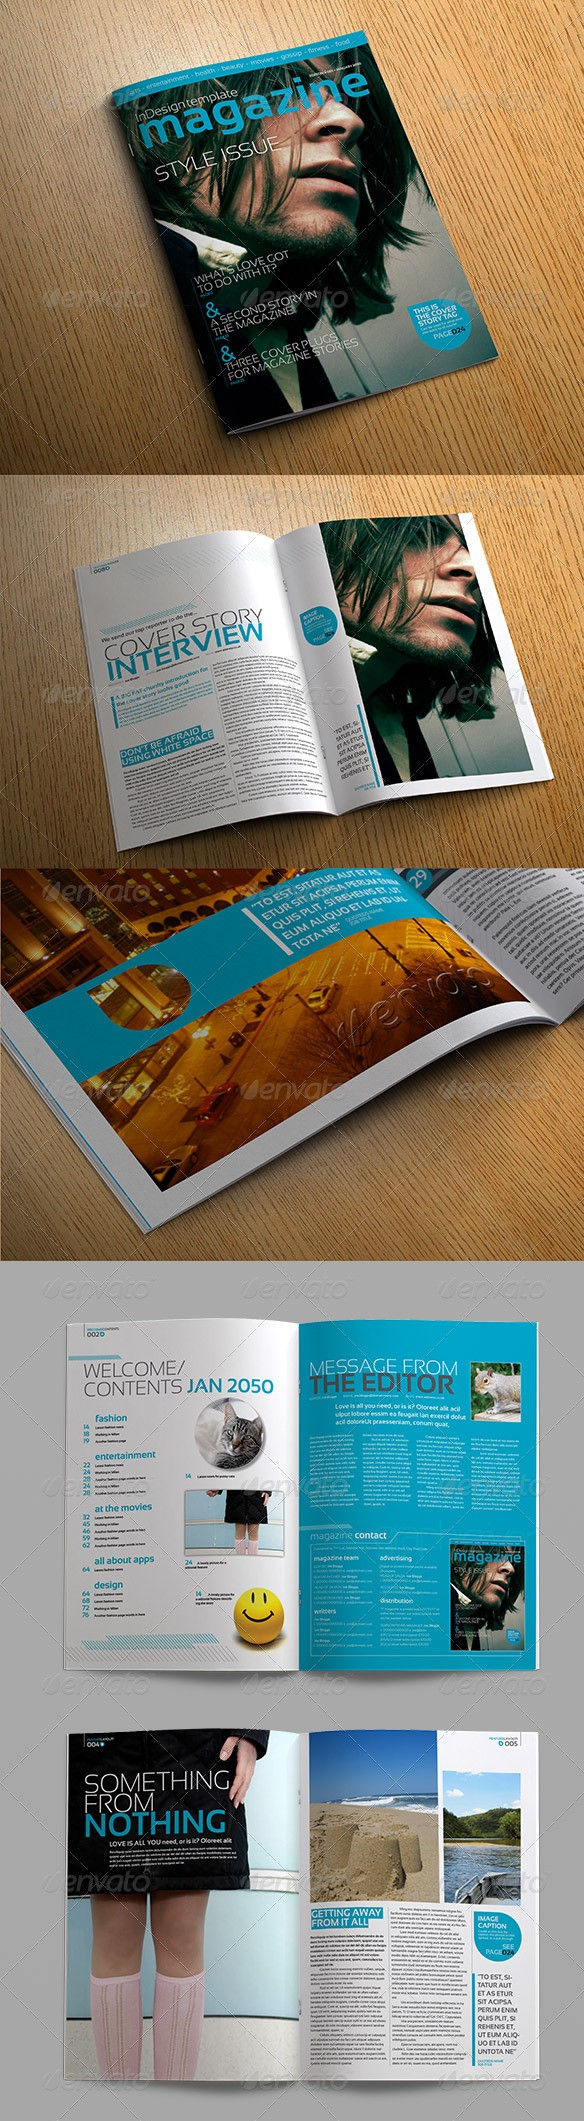 55+ Best Magazine Templates - Photoshop PSD & InDesign ...